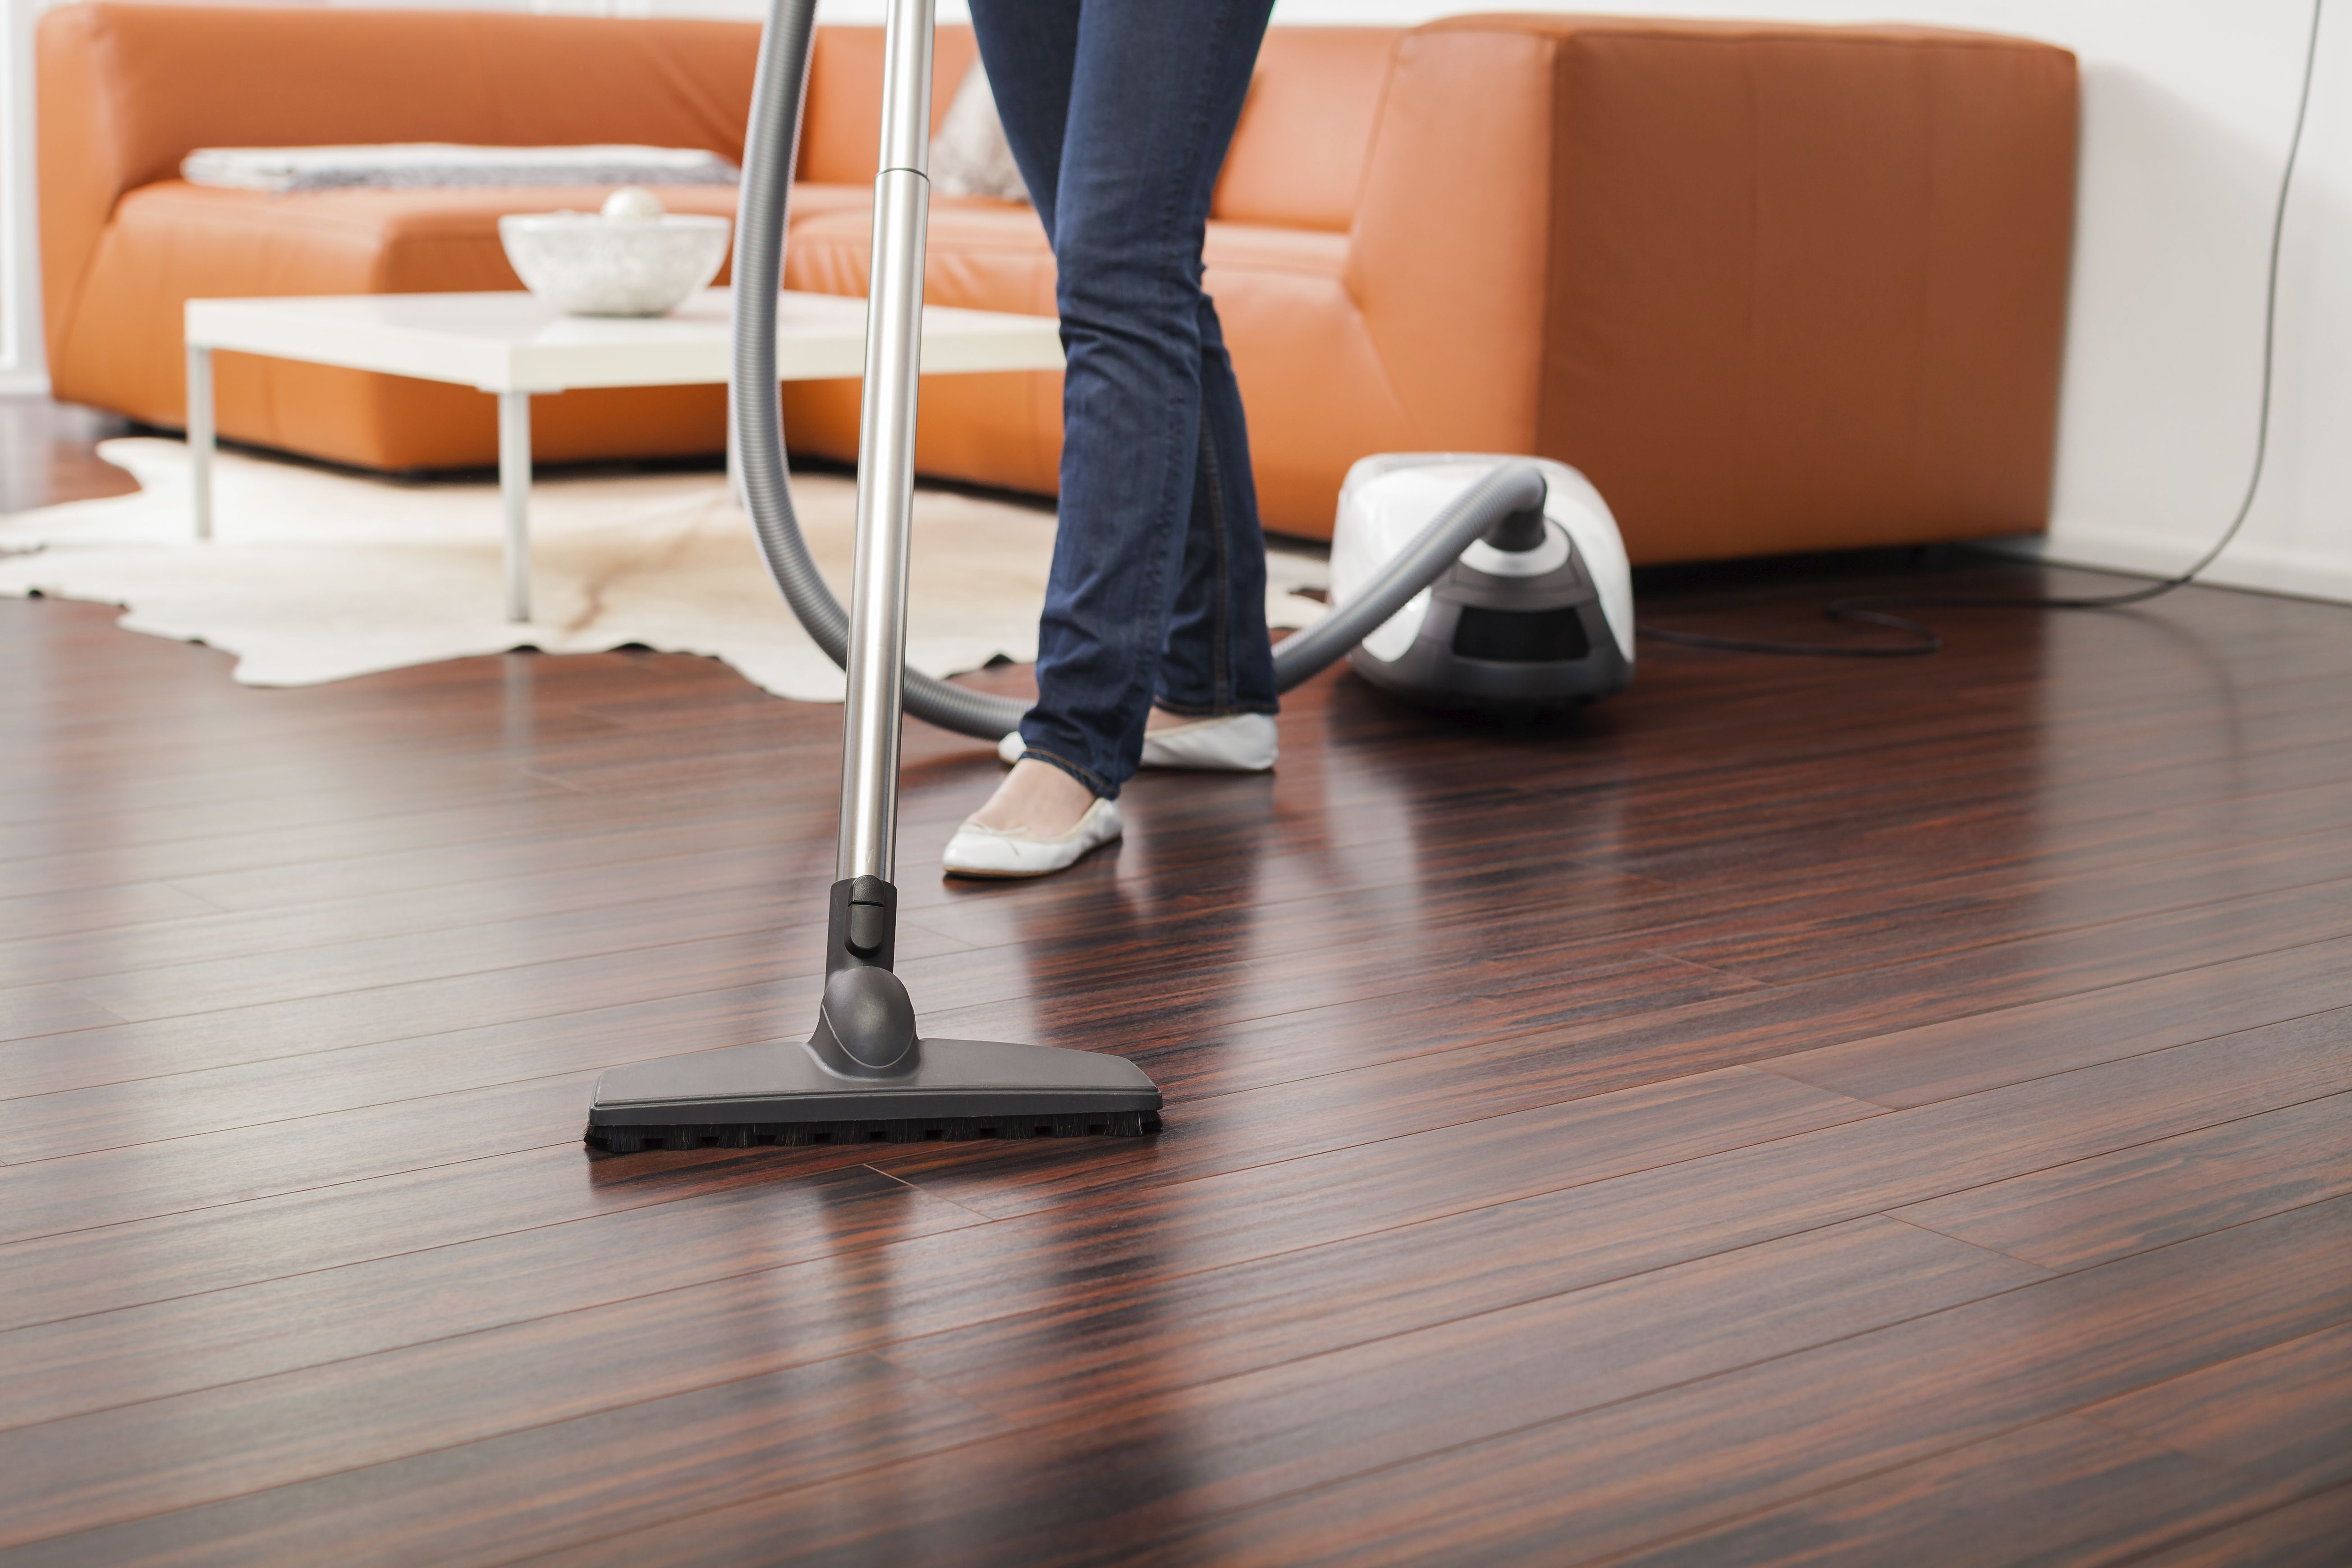 Best vacuum for hardwood and tile floors httpnextsoft21 best vacuum for hardwood and tile floors installing ceramic tile flooring could be performed by anyone with good eyesight dailygadgetfo Choice Image